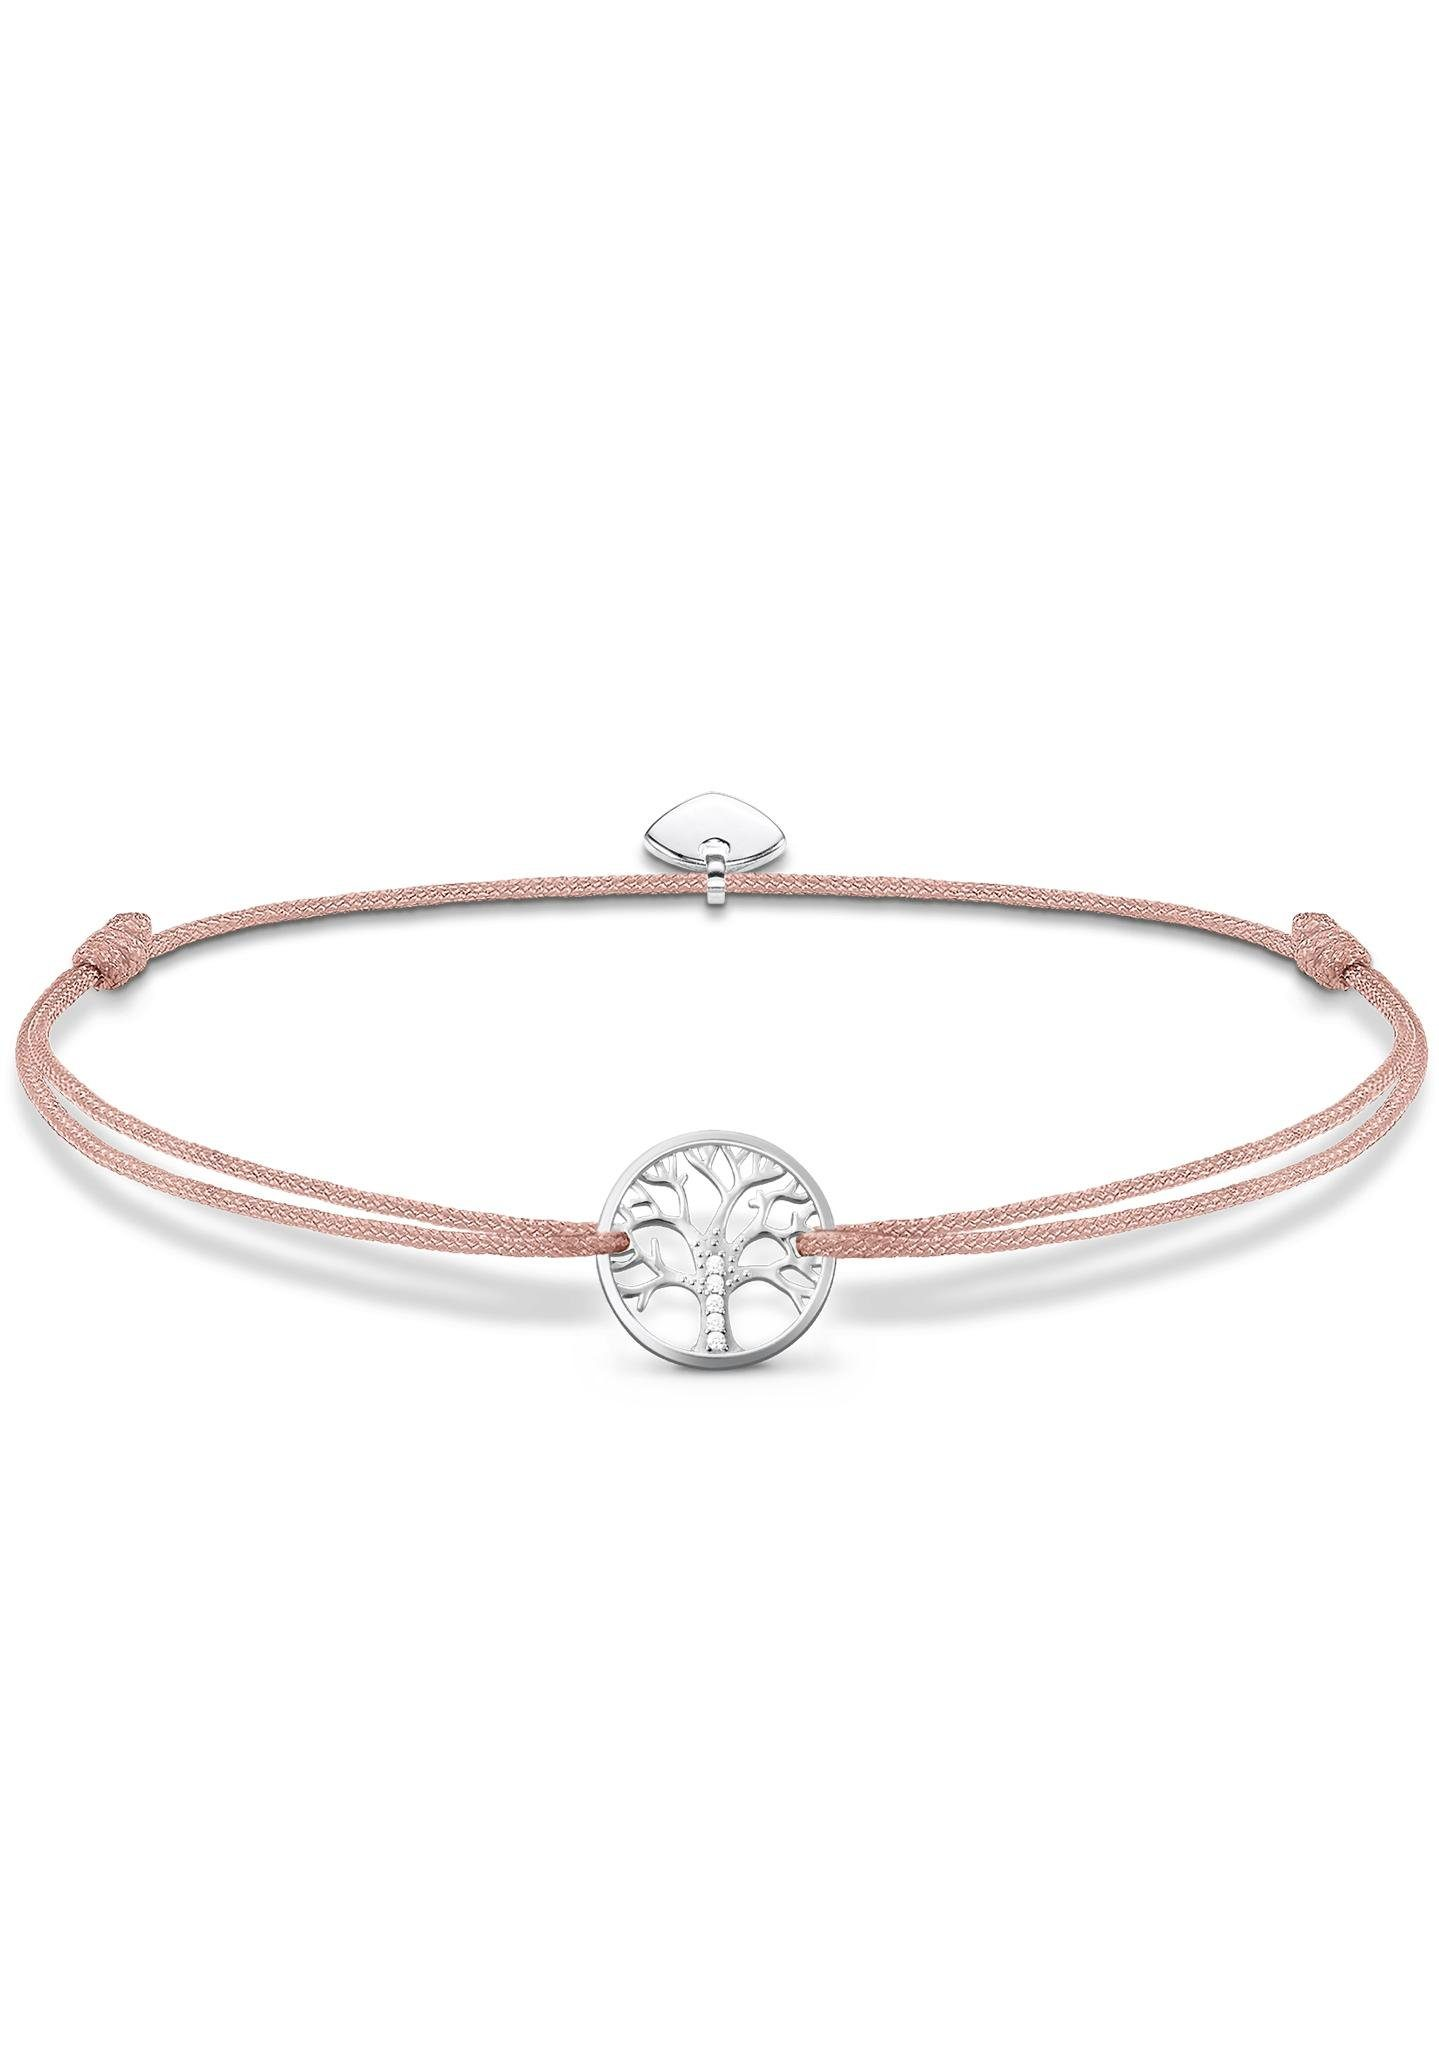 THOMAS SABO Armband »Little Secret Tree of Love, LS031-401-19-L20v«, mit Zirkonia